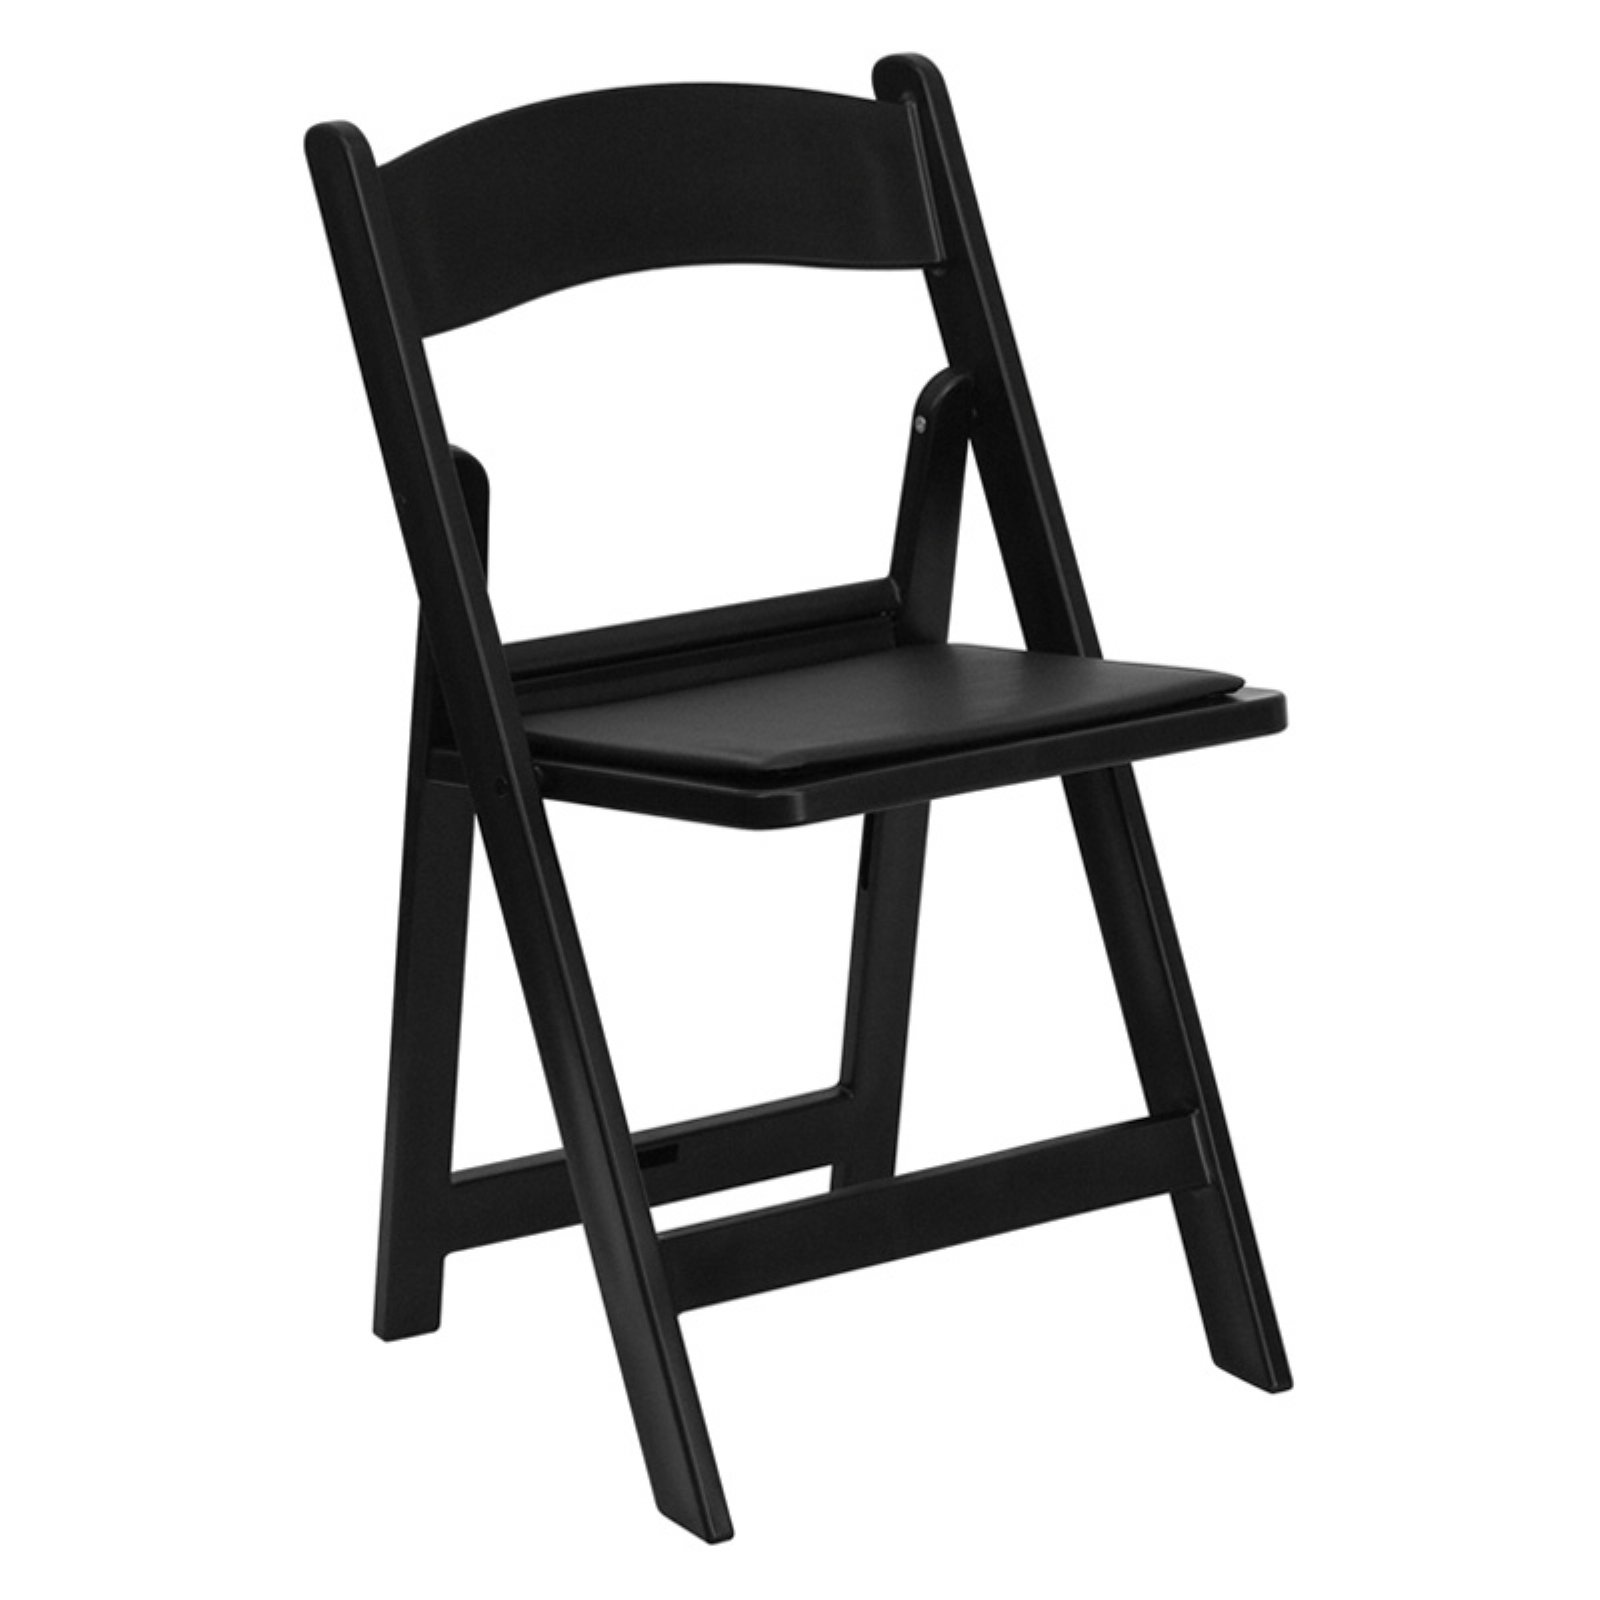 Flash Furniture HERCULES Series 1000 lb. Capacity Resin Folding Chair with Black Vinyl Padded Seat Multiple Colors